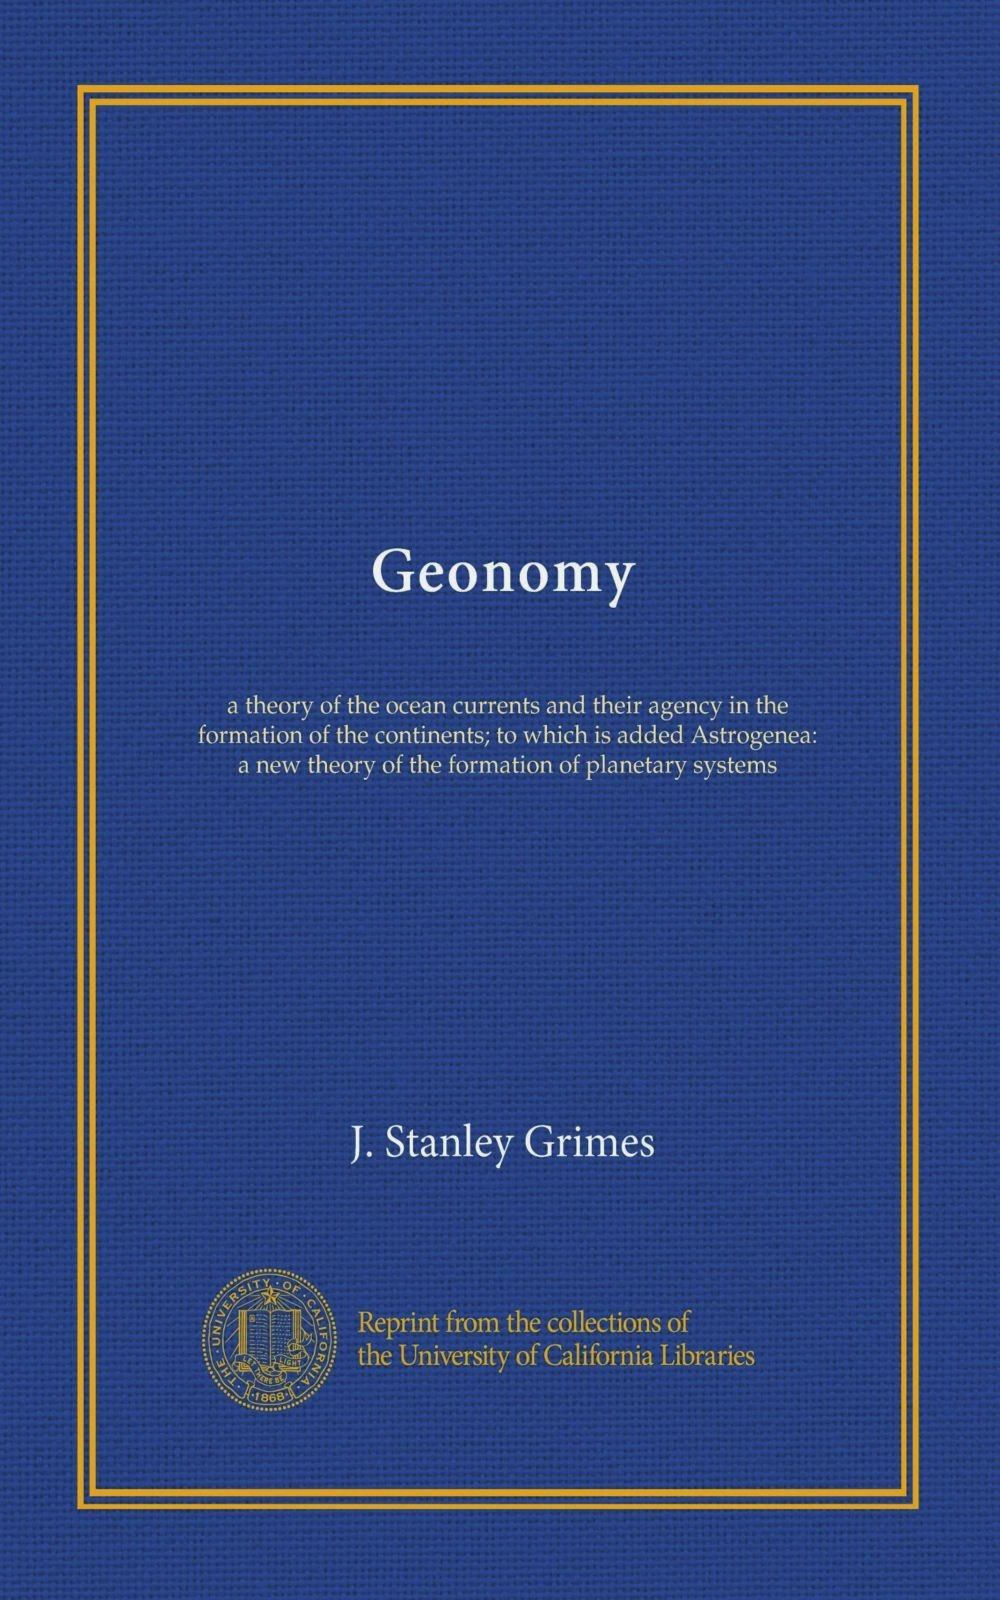 Geonomy: a theory of the ocean currents and their agency in the formation of the continents; to which is added Astrogenea: a new theory of the formation of planetary systems PDF